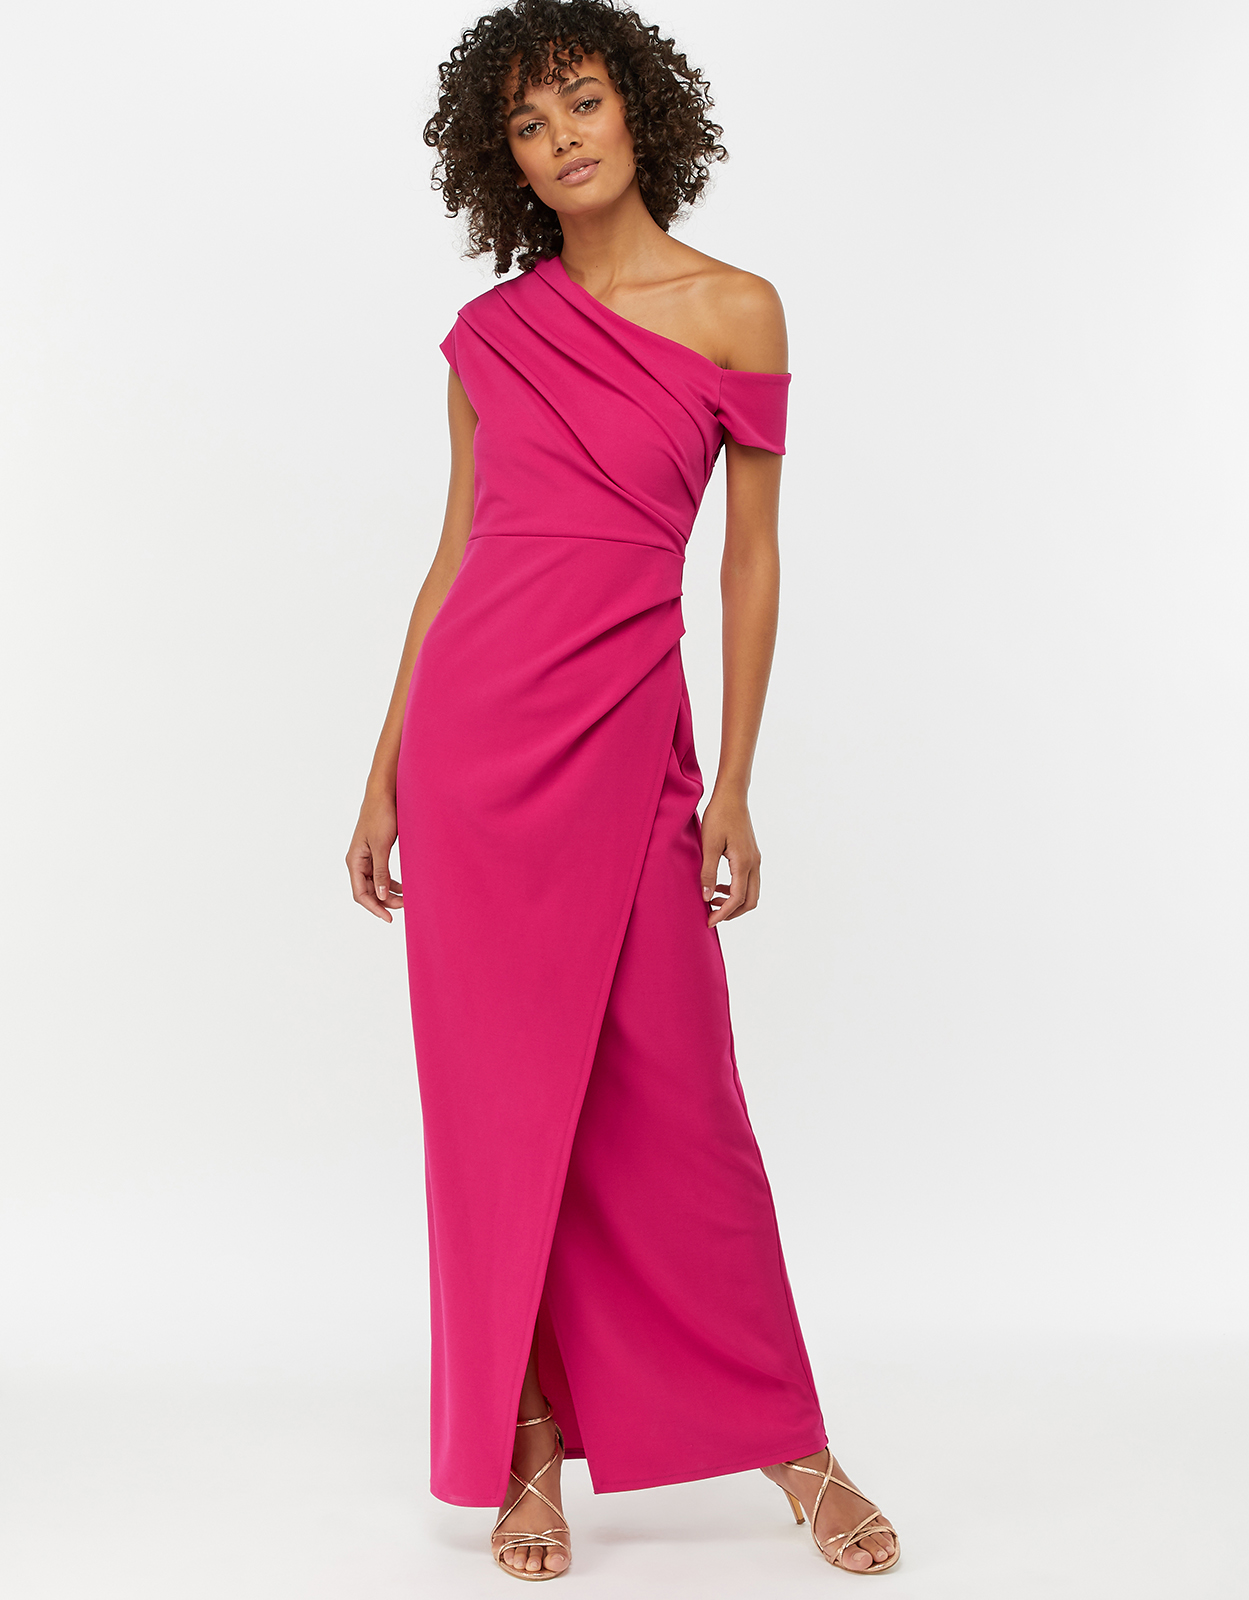 Monsoon Senorita Drape Detail Maxi Dress